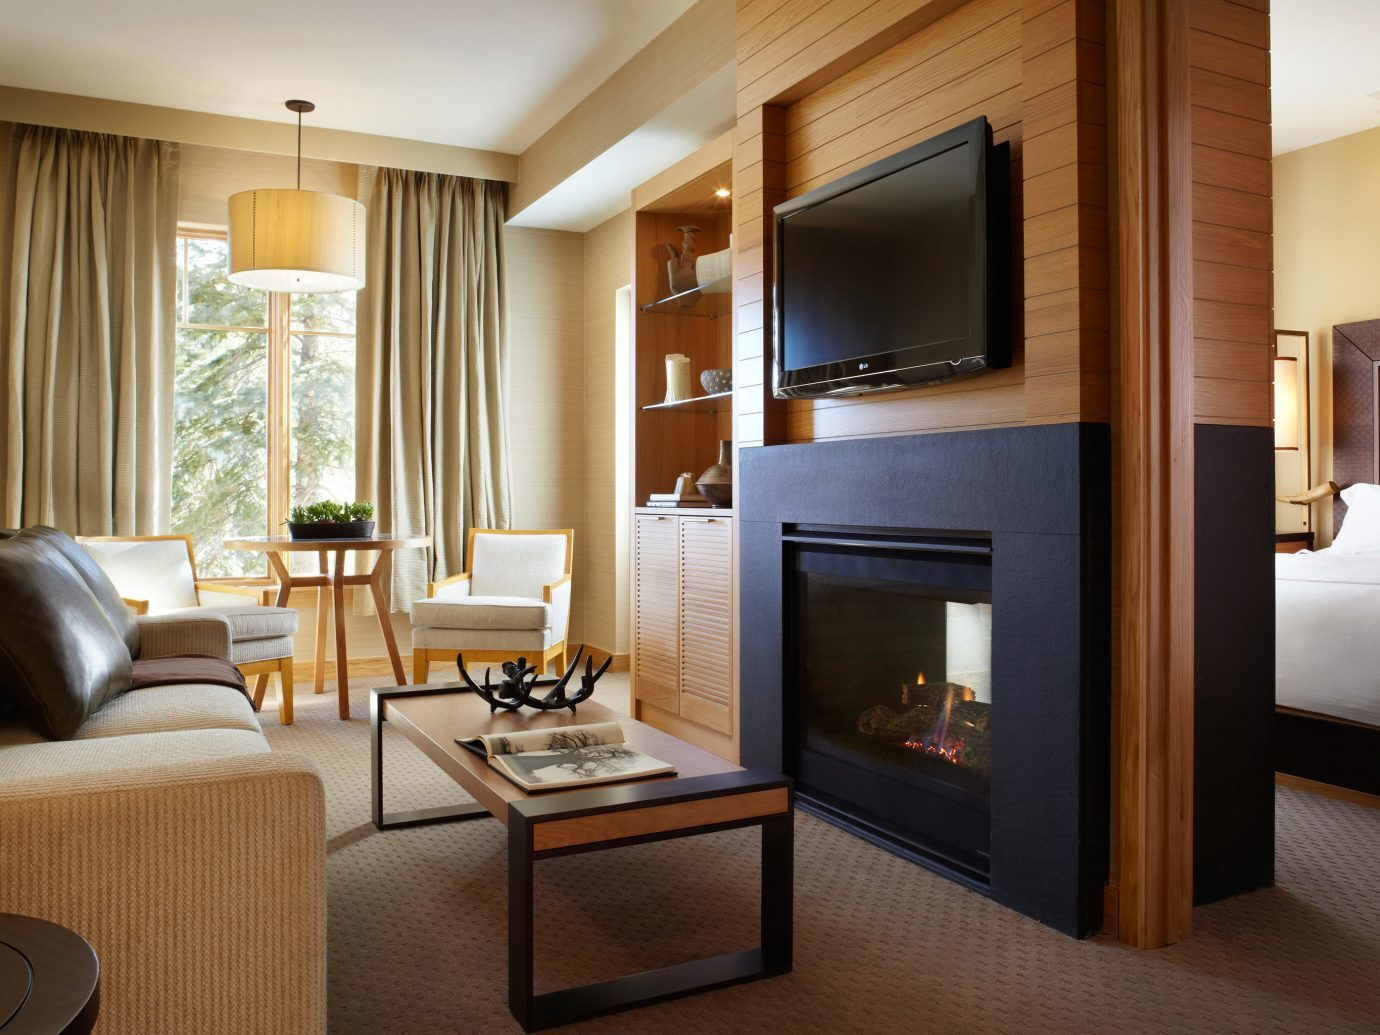 Bedroom at Viceroy Snowmass